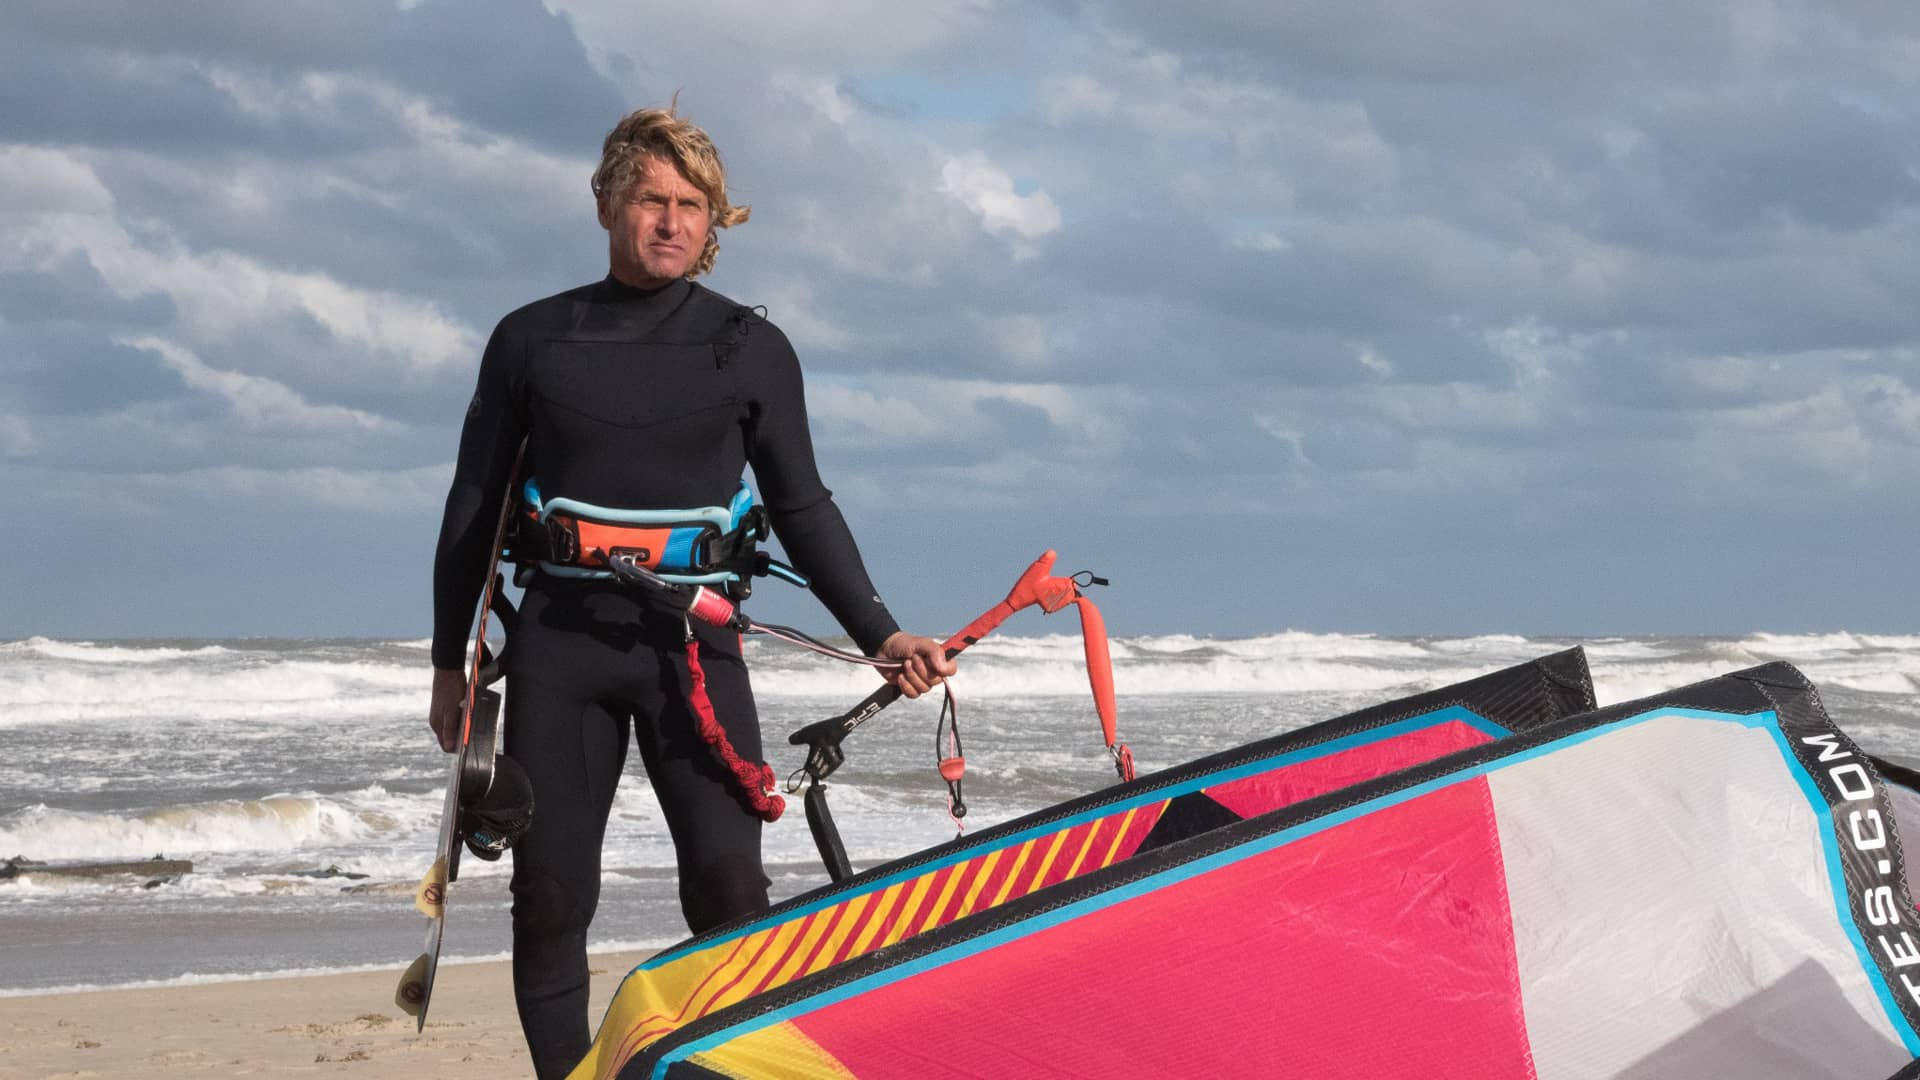 How to roll your lines for your next kite session - with Epic Kites Kiteboarding